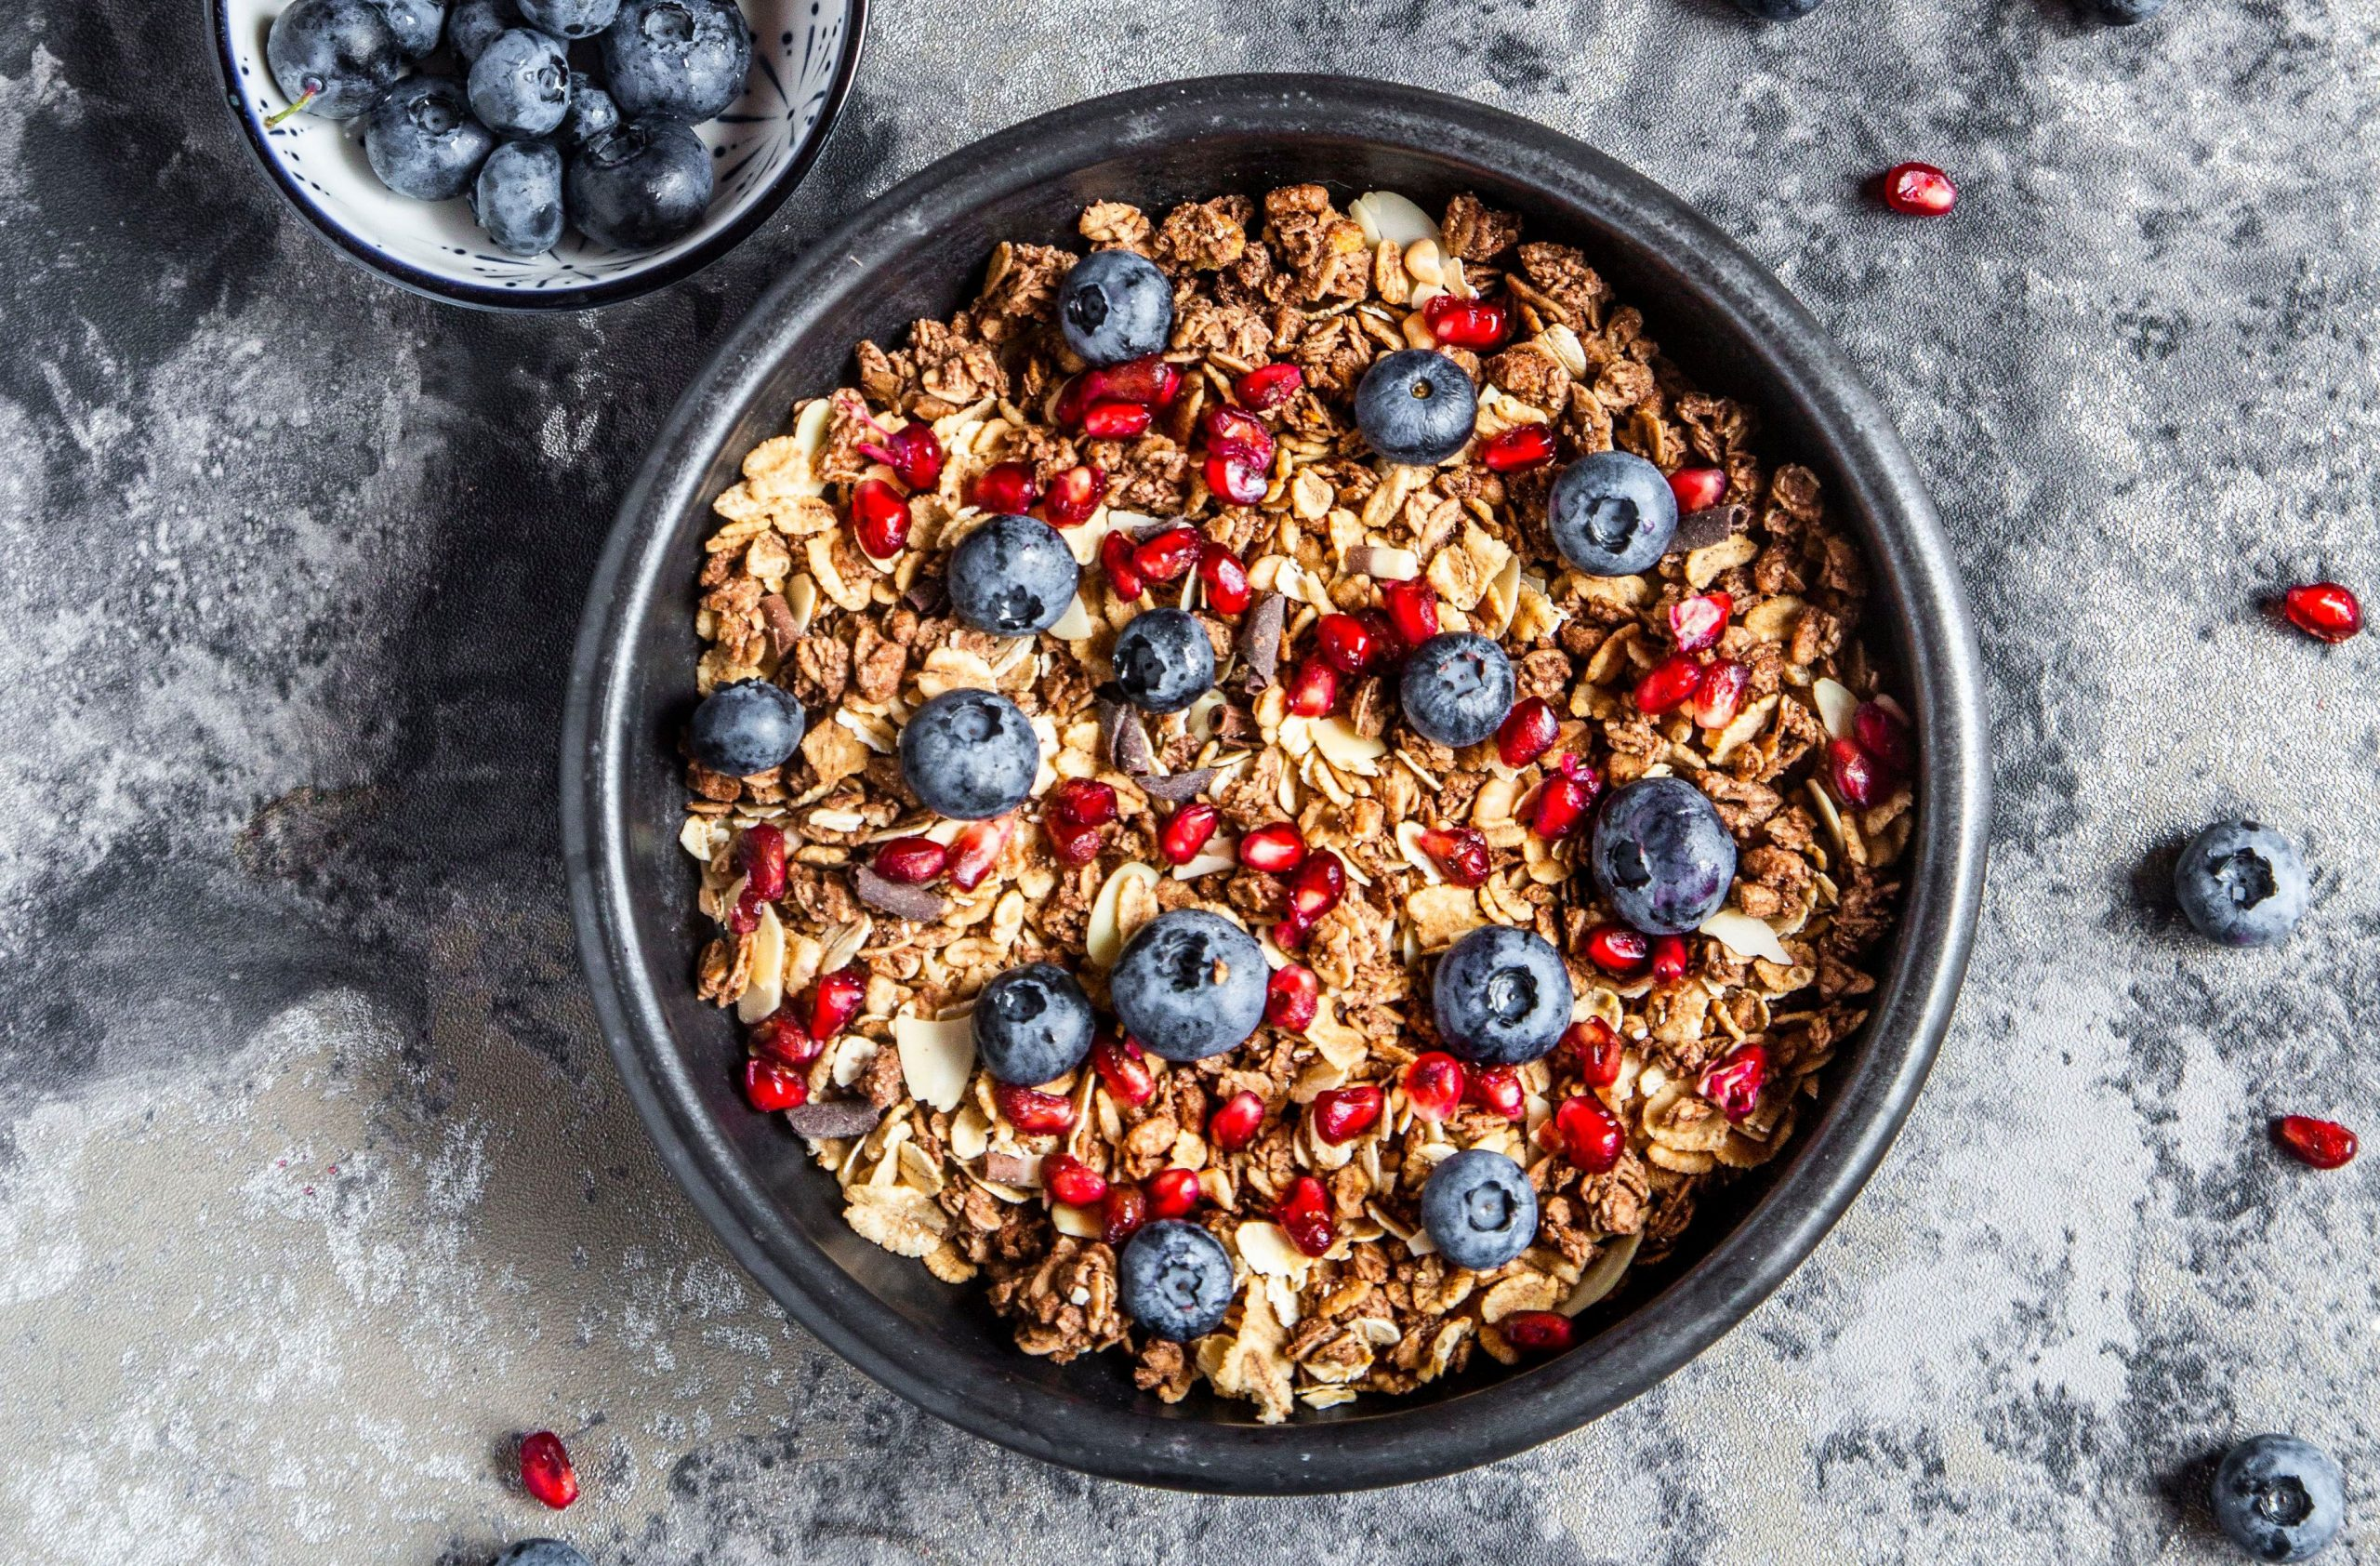 nut and muesli diet